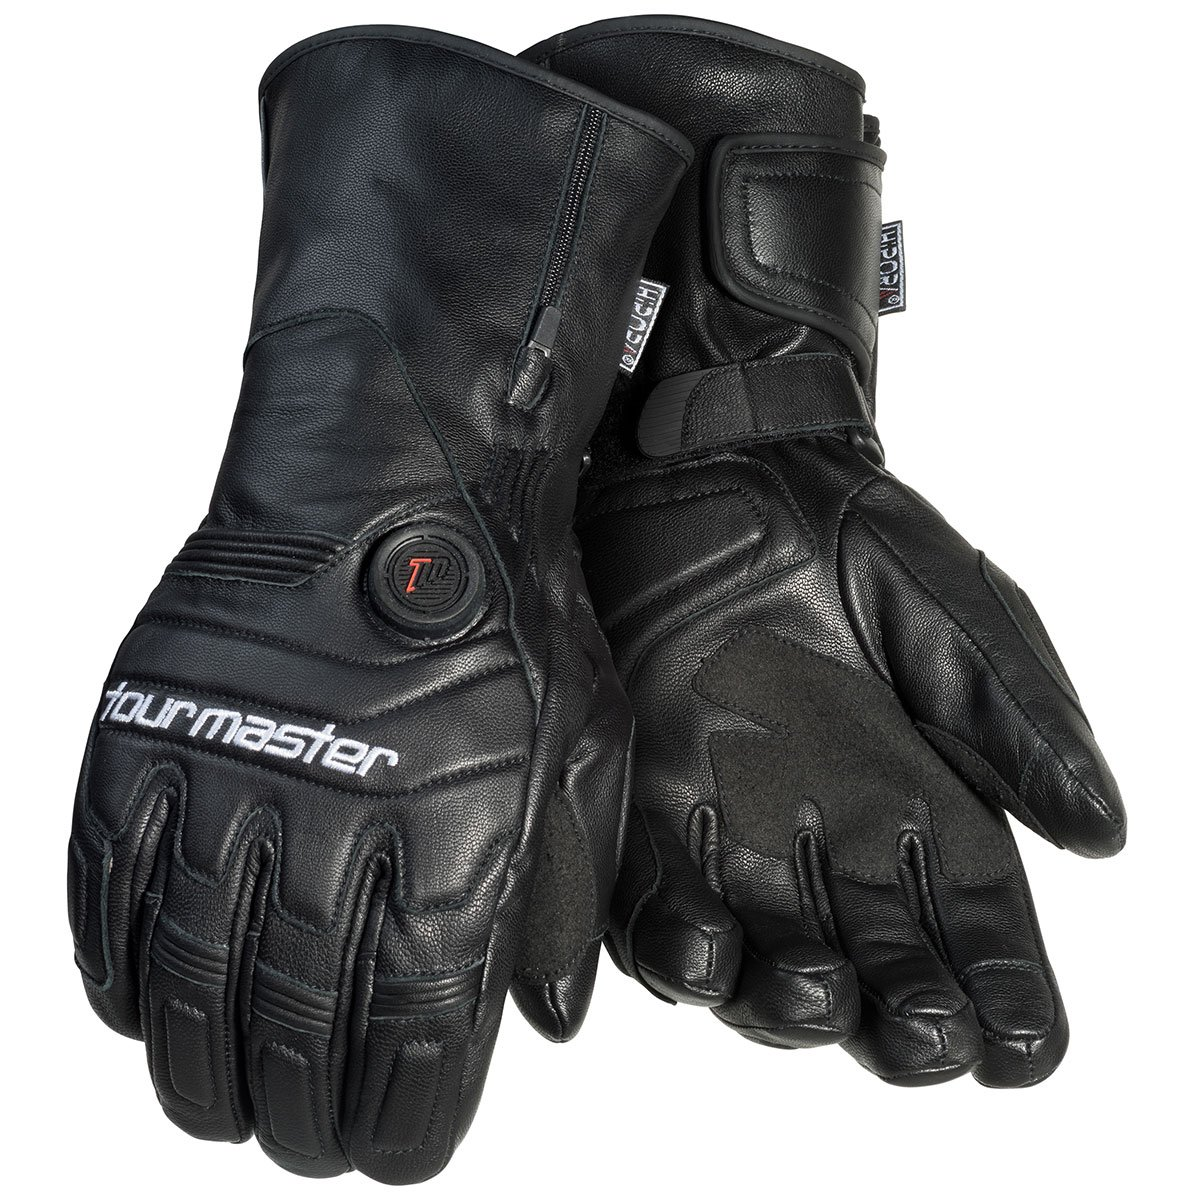 Tourmaster Synergy 7.4V Battery Heated Leather Gloves (MEDIUM) (BLACK) by Tourmaster (Image #1)